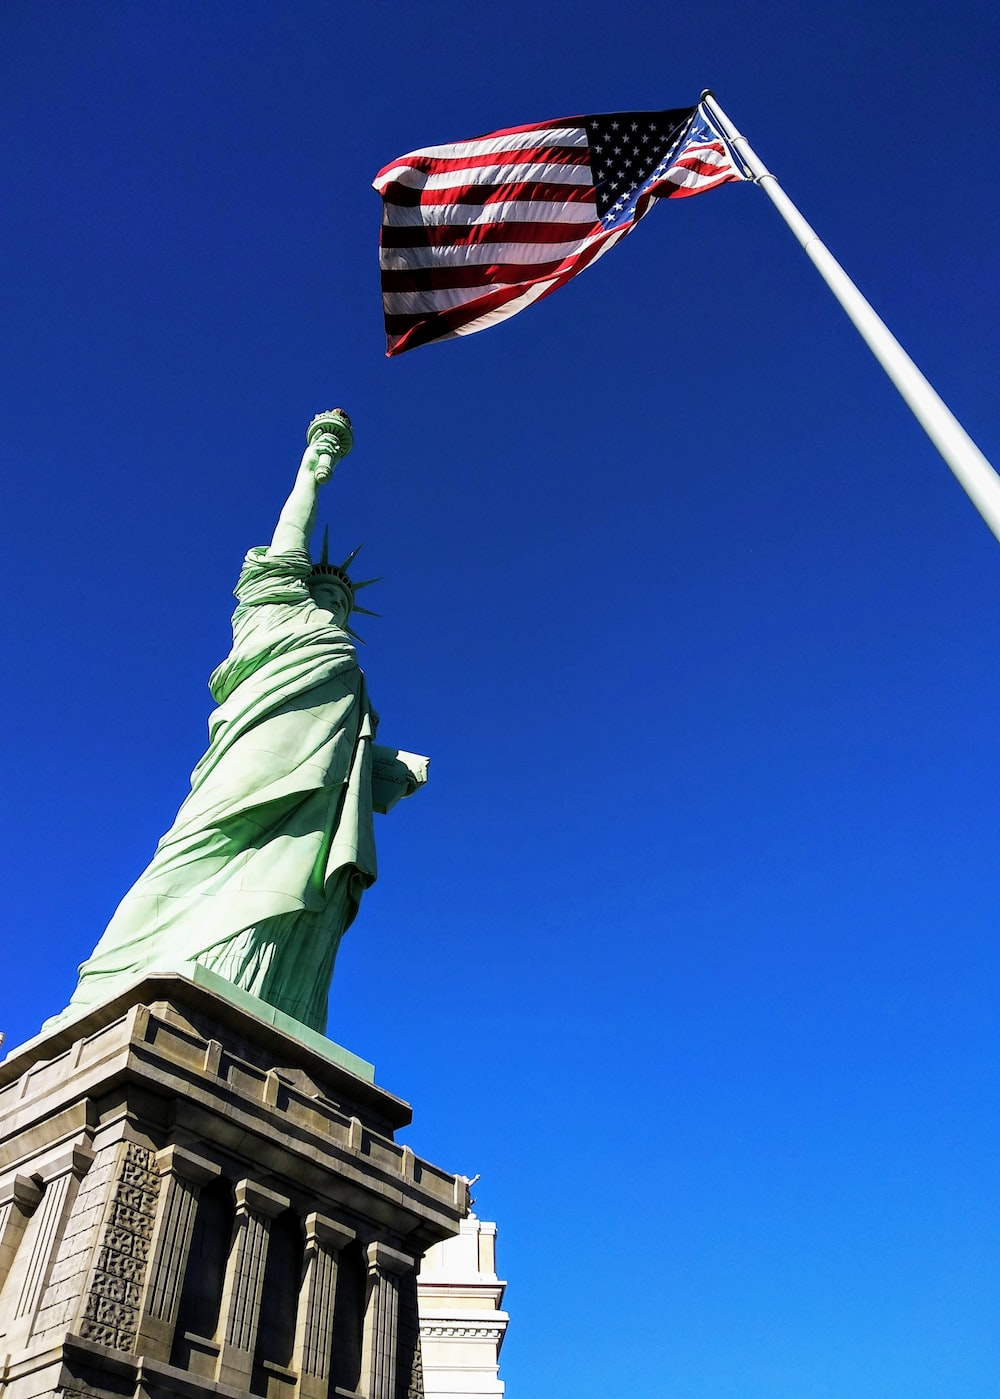 Statue of Liberty in front USA flag under blue sky